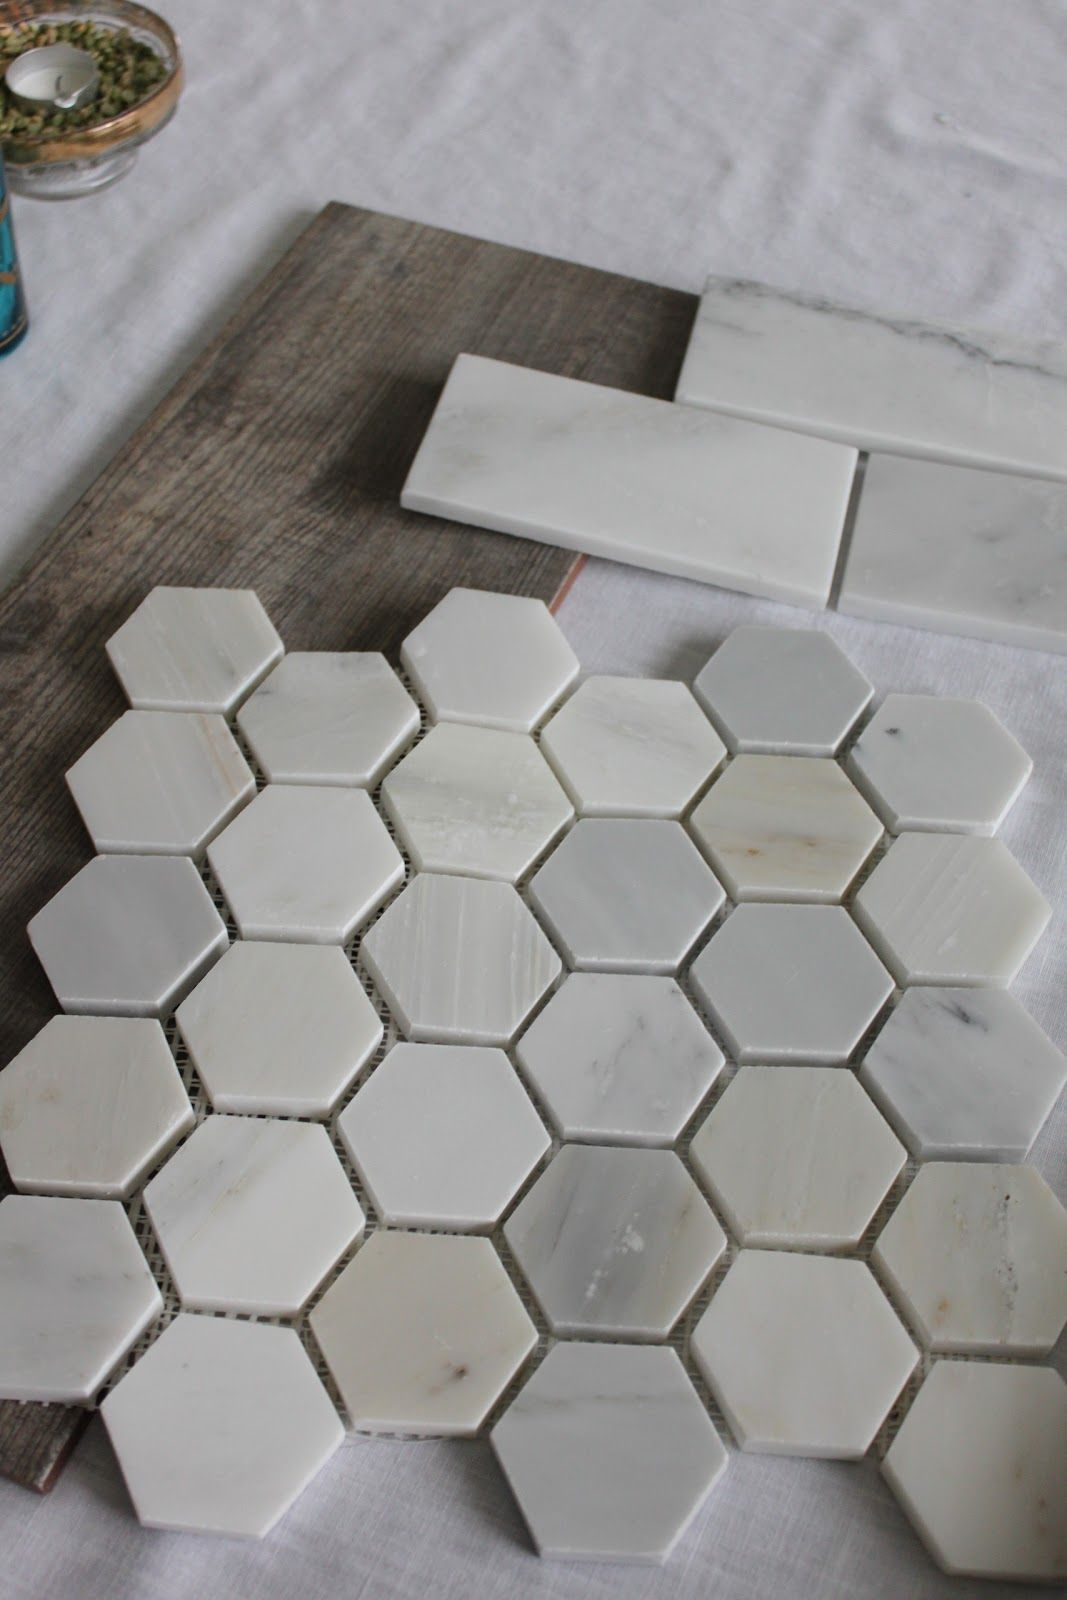 Happenstance home circle of moms top 25 and our bathroom tile the shower floor will be finished in hampton carrara polished hex the shower walls will be hampton carrara polished subway tiles dailygadgetfo Gallery